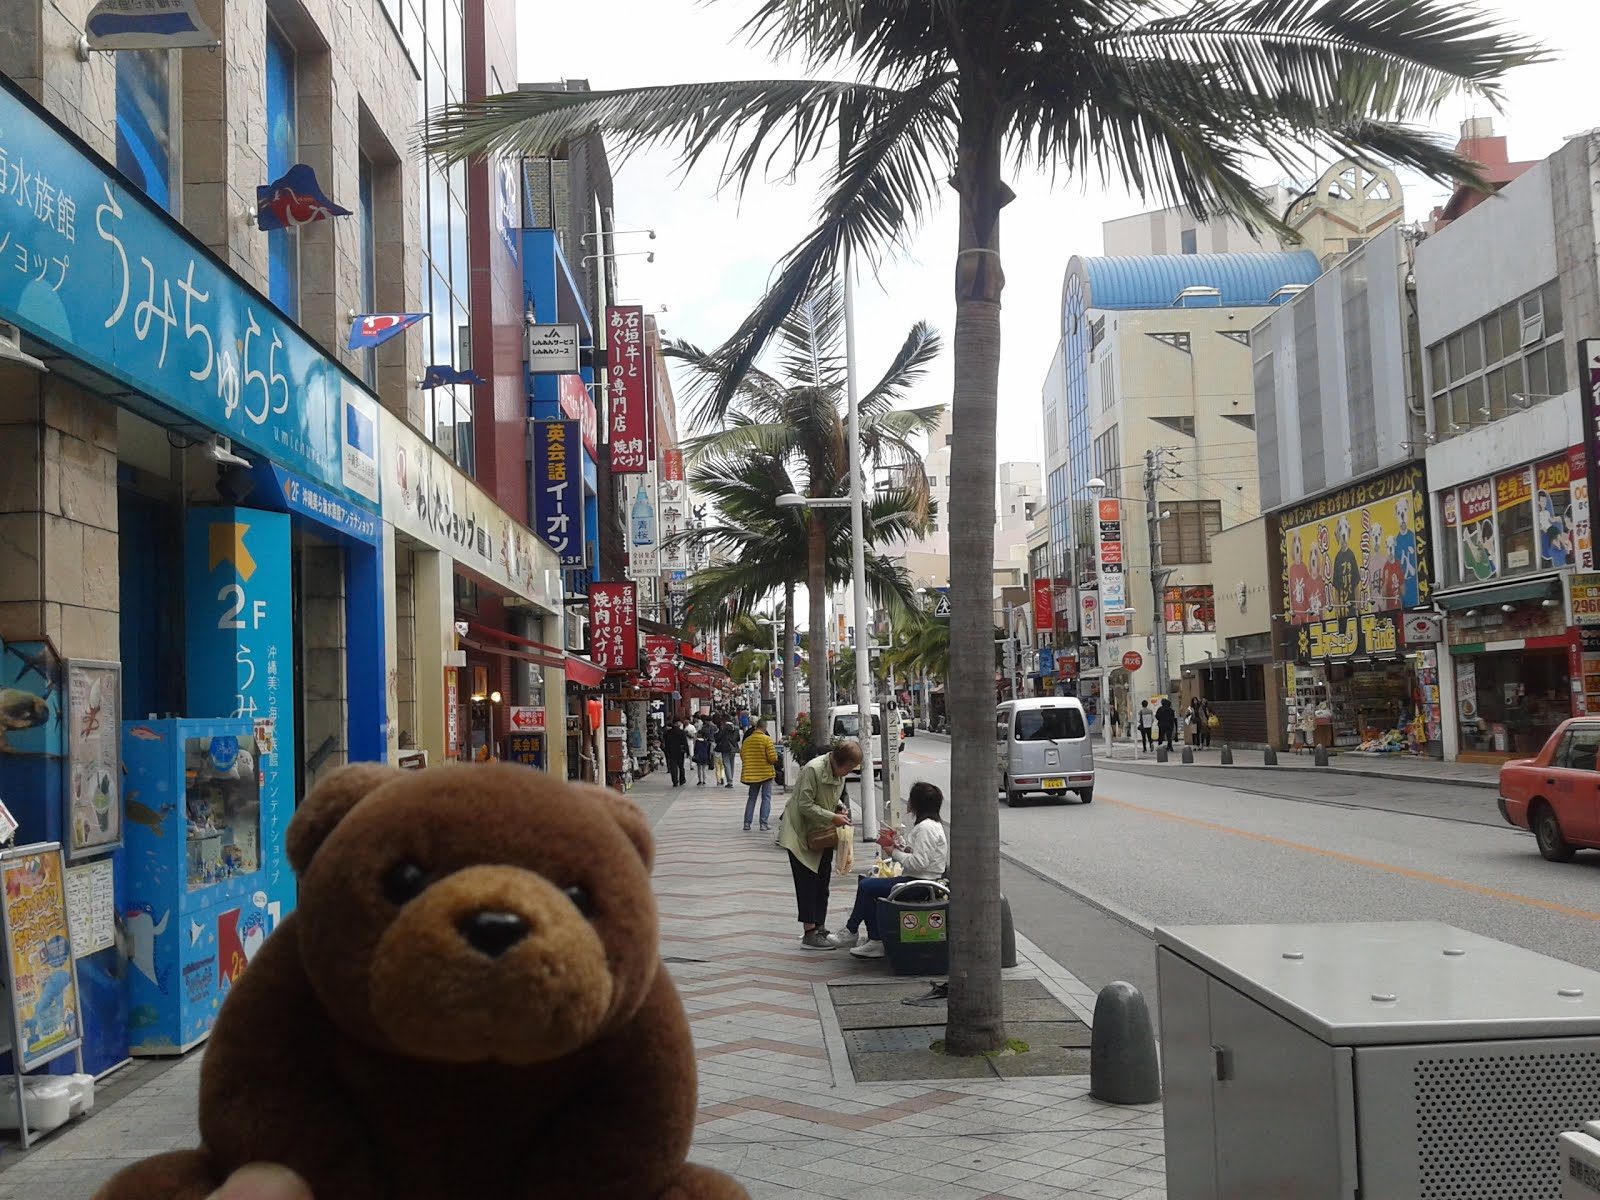 Teddy in Naha, Okinawa, Japan